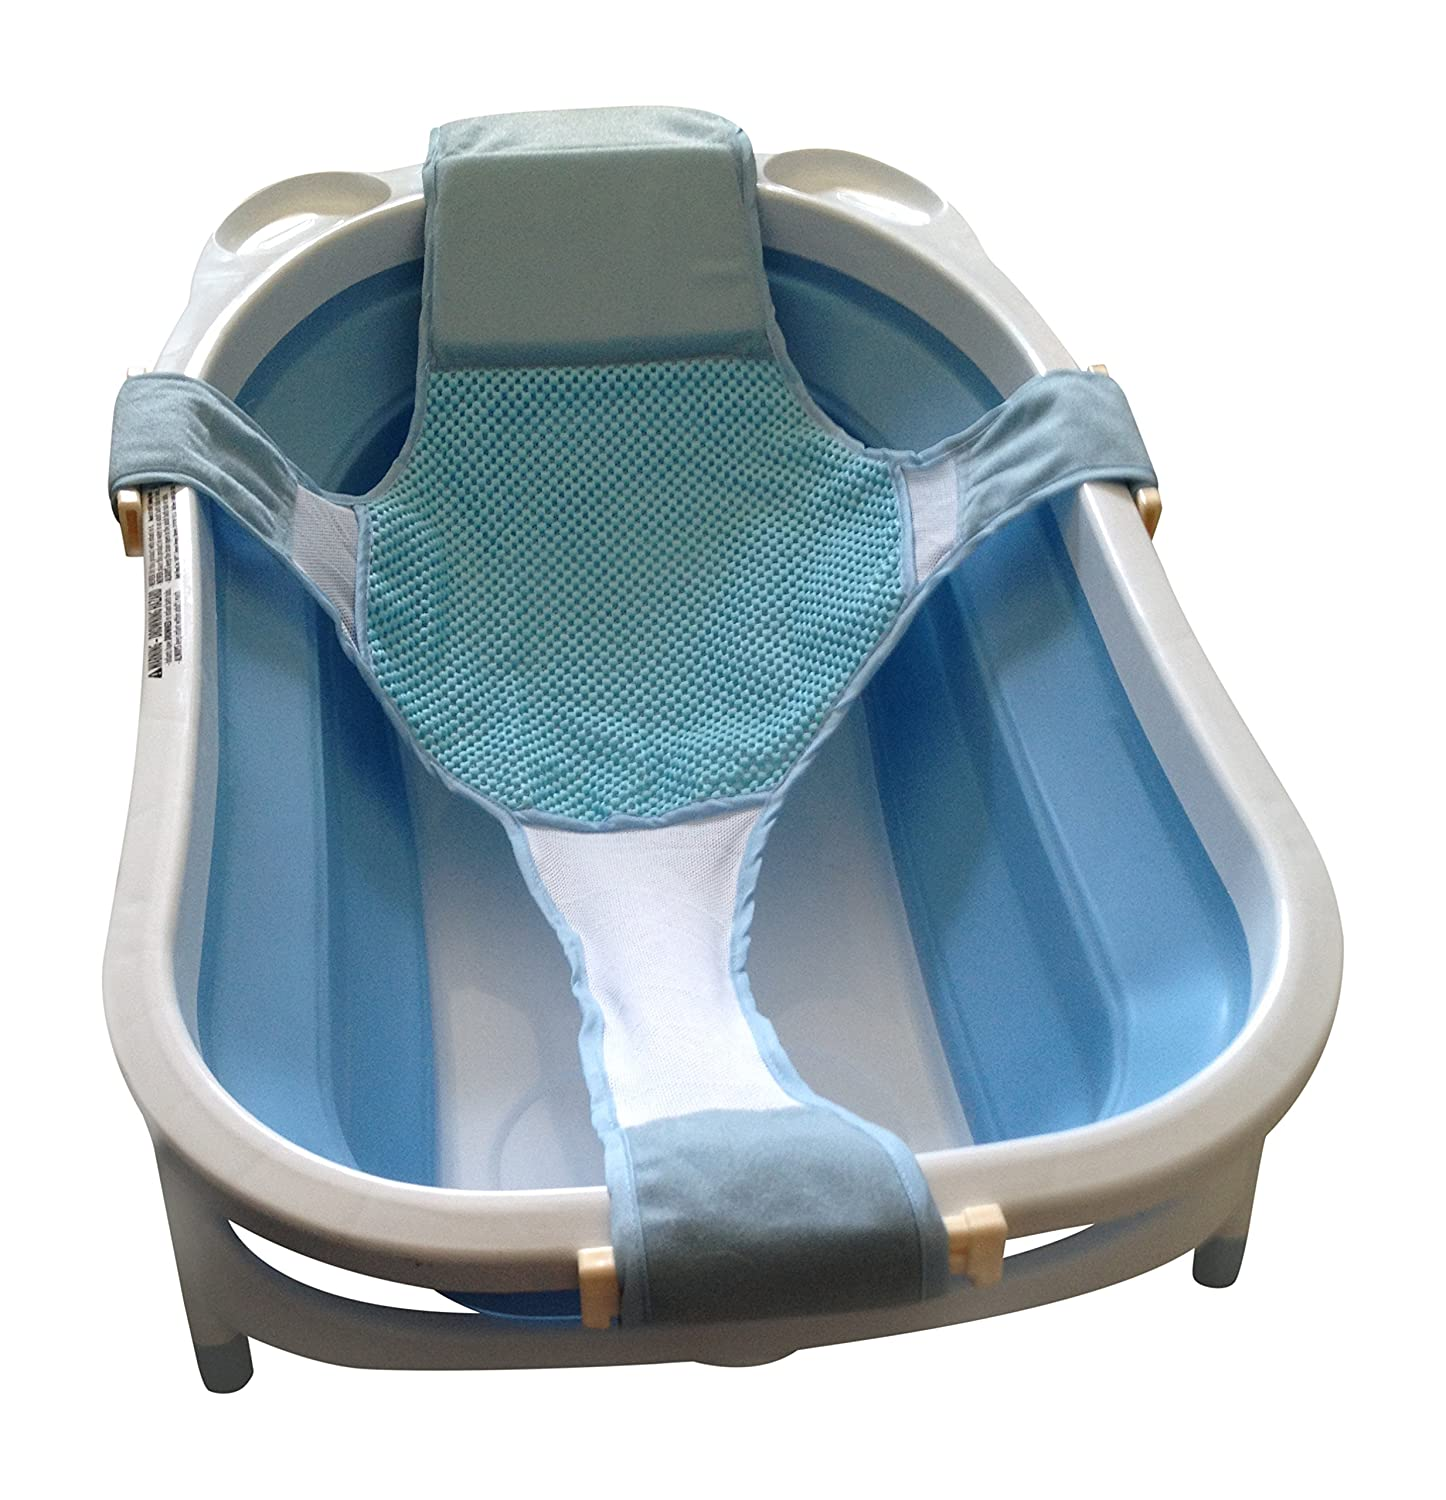 Amazon.com : Baby Bathtub Seat Support Sling Net Karibu Aojia Infant ...